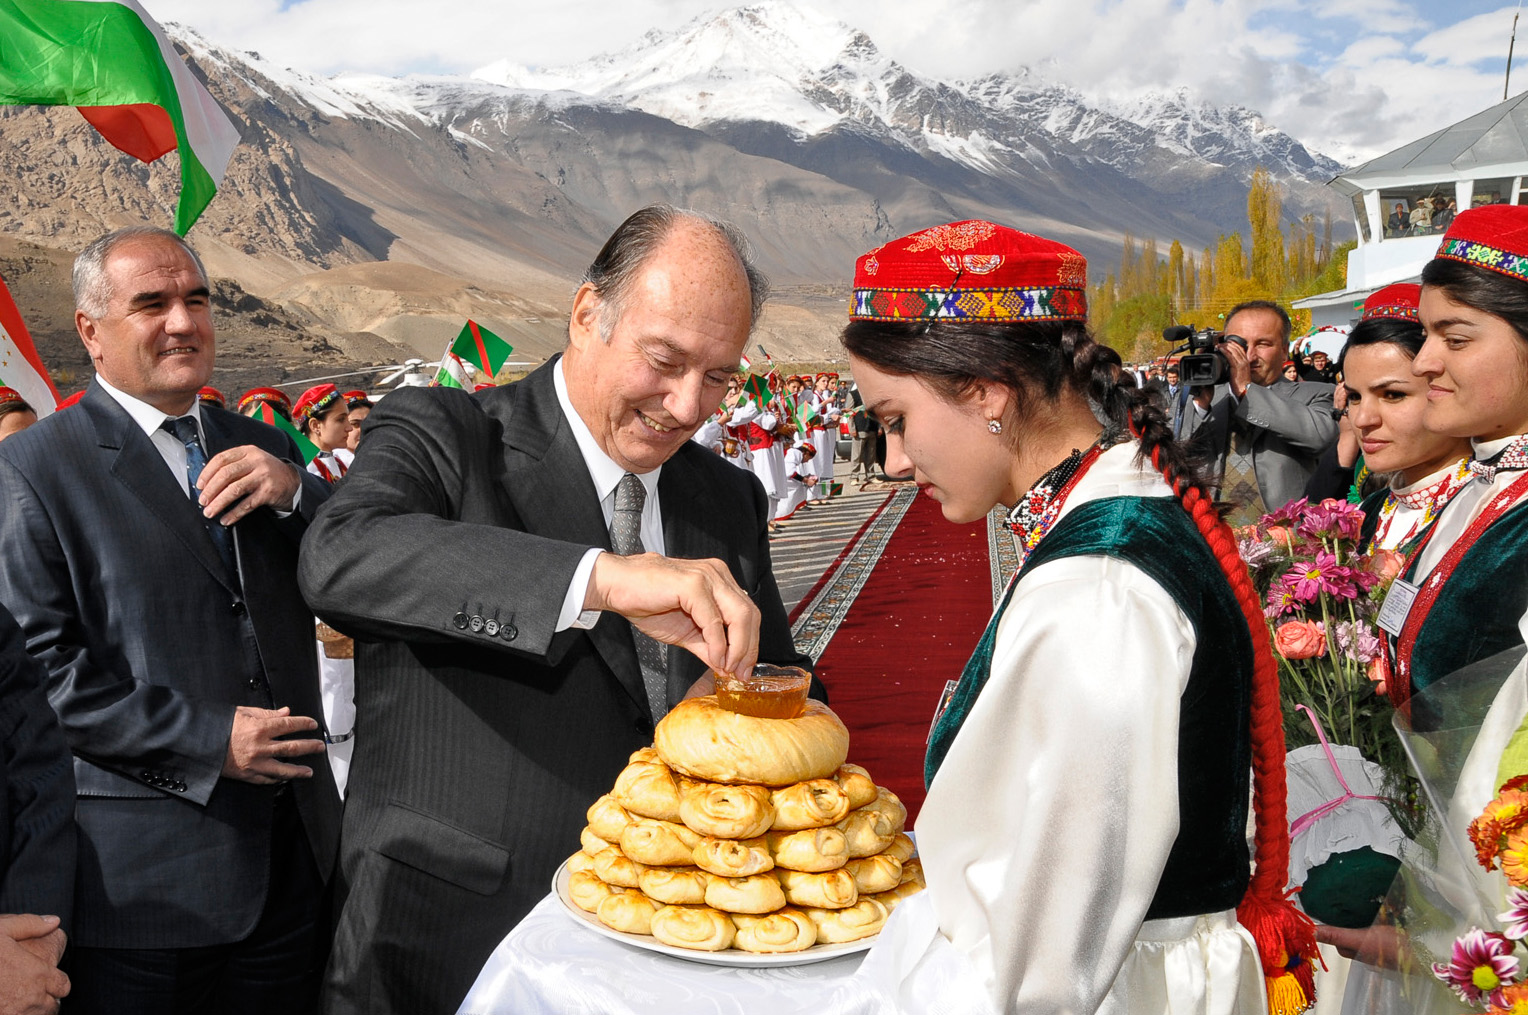 Against a picturesque background of snowy Pamir mountain peaks, Mawlana Hazar Imam is welcomed to Gorno-Badakhshan with a traditional offering of non (bread). Photo: Moez Visram